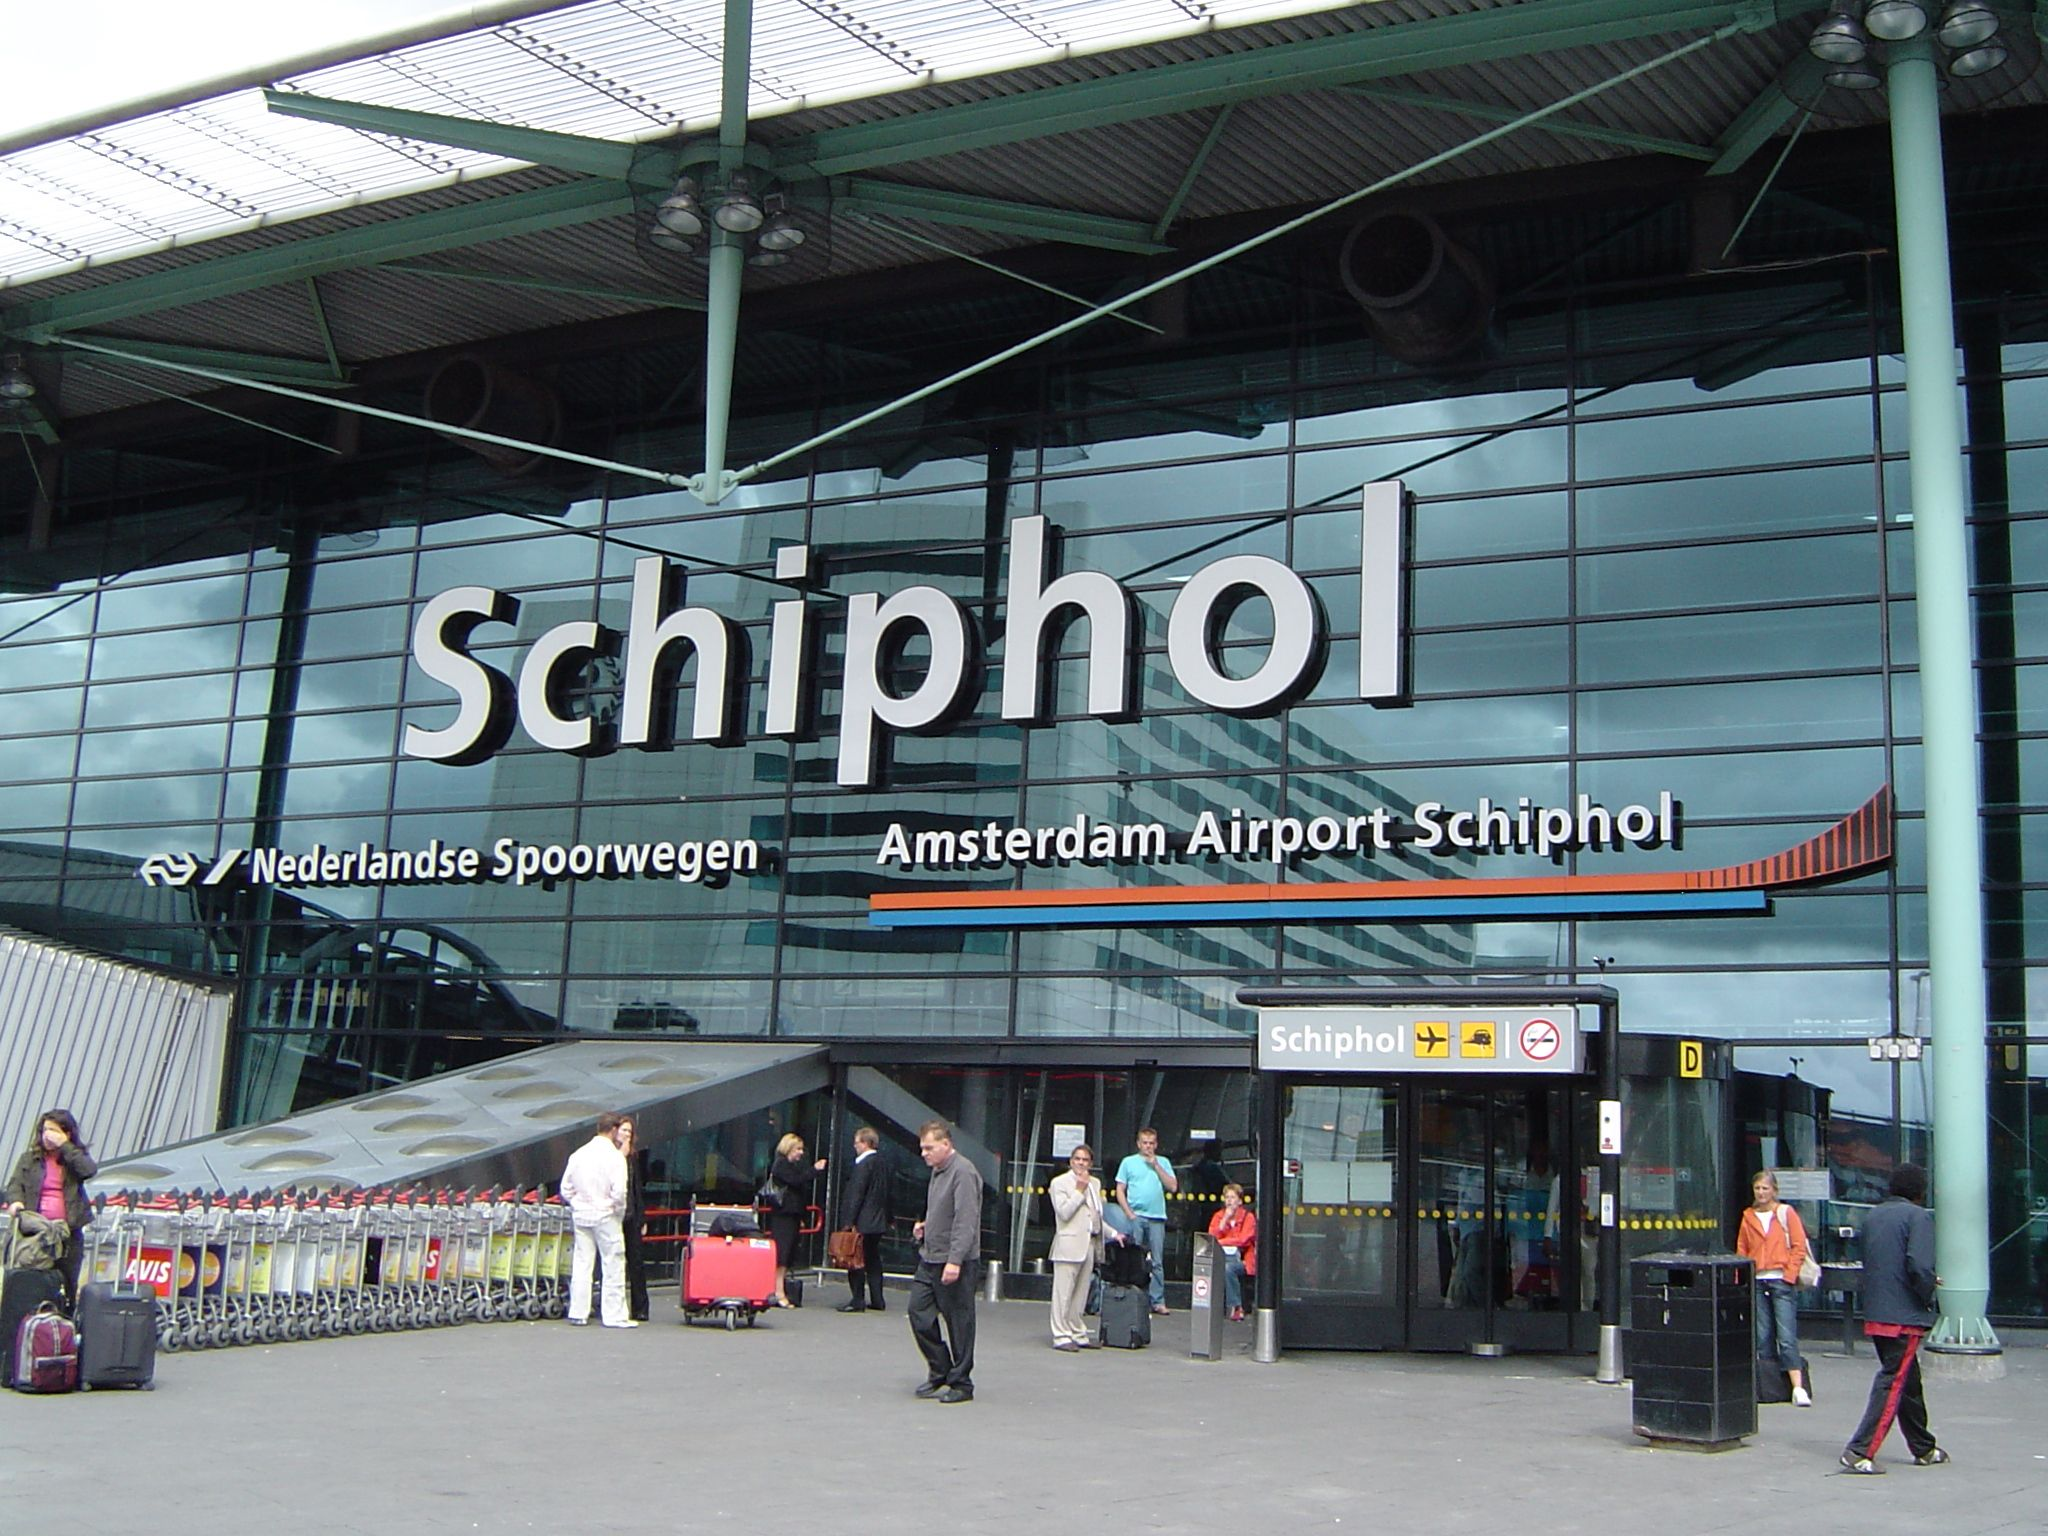 Book an economical taxi from Amsterdam Schiphol